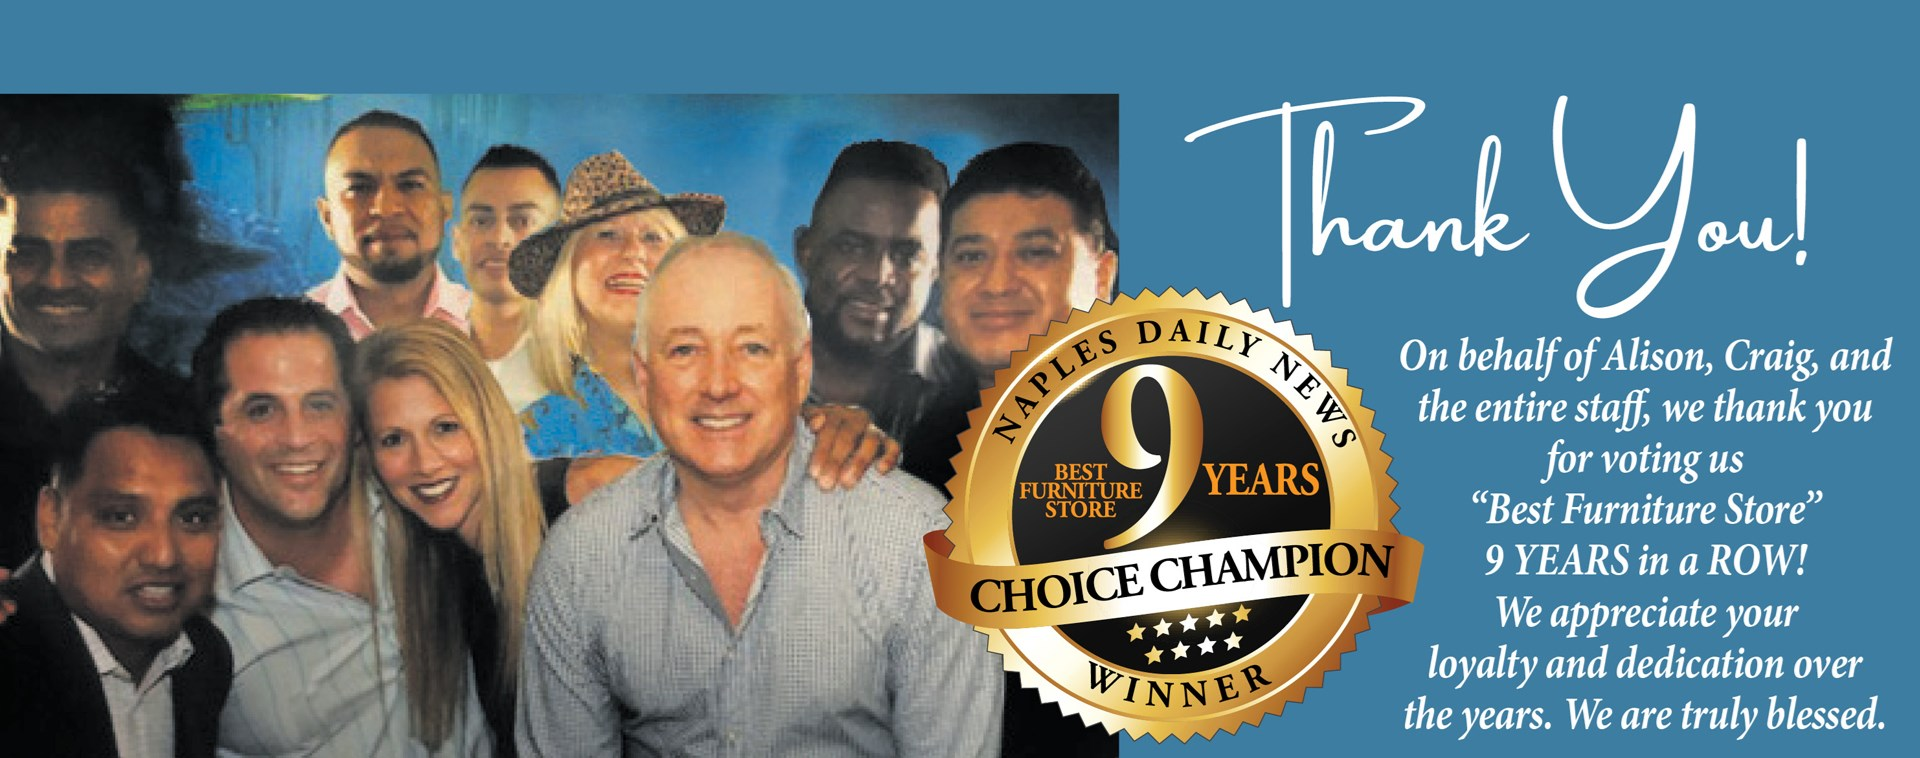 Thank You - 9 Years Choice Champion